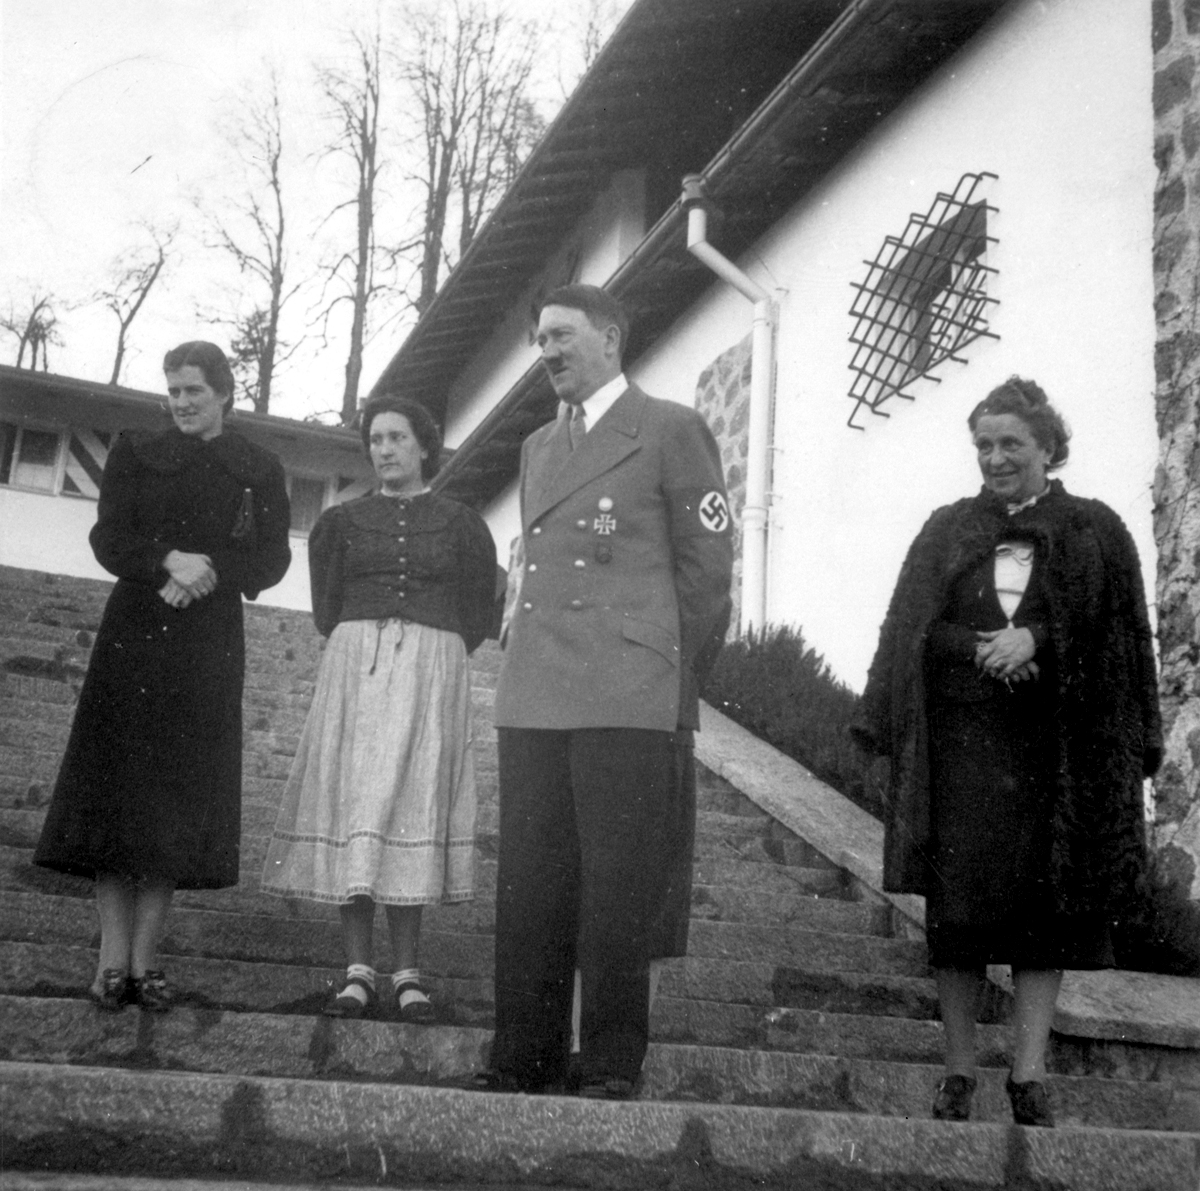 Adolf Hitler on the stairs of the Berghof before Franz Xaver Schwarz and his wife's visit for Scharz's birthday, from Eva Braun's albums